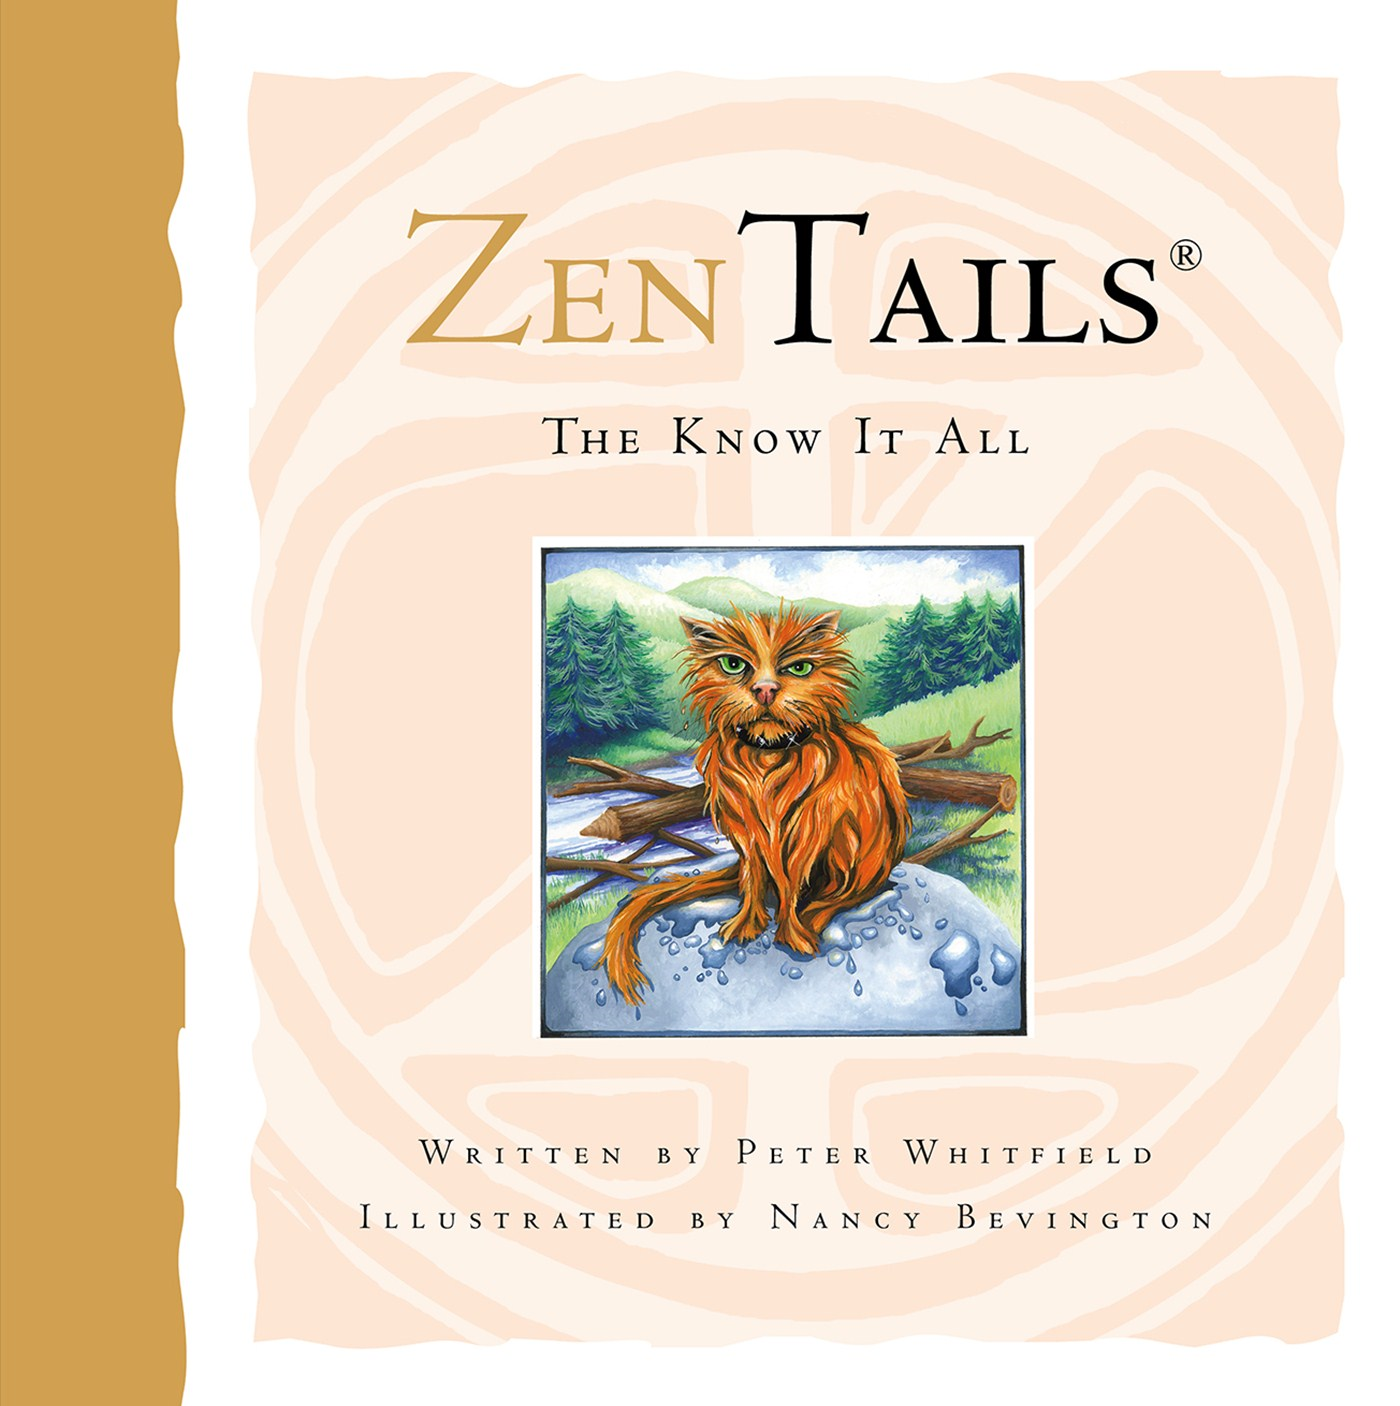 Zen Tails - The Know It All